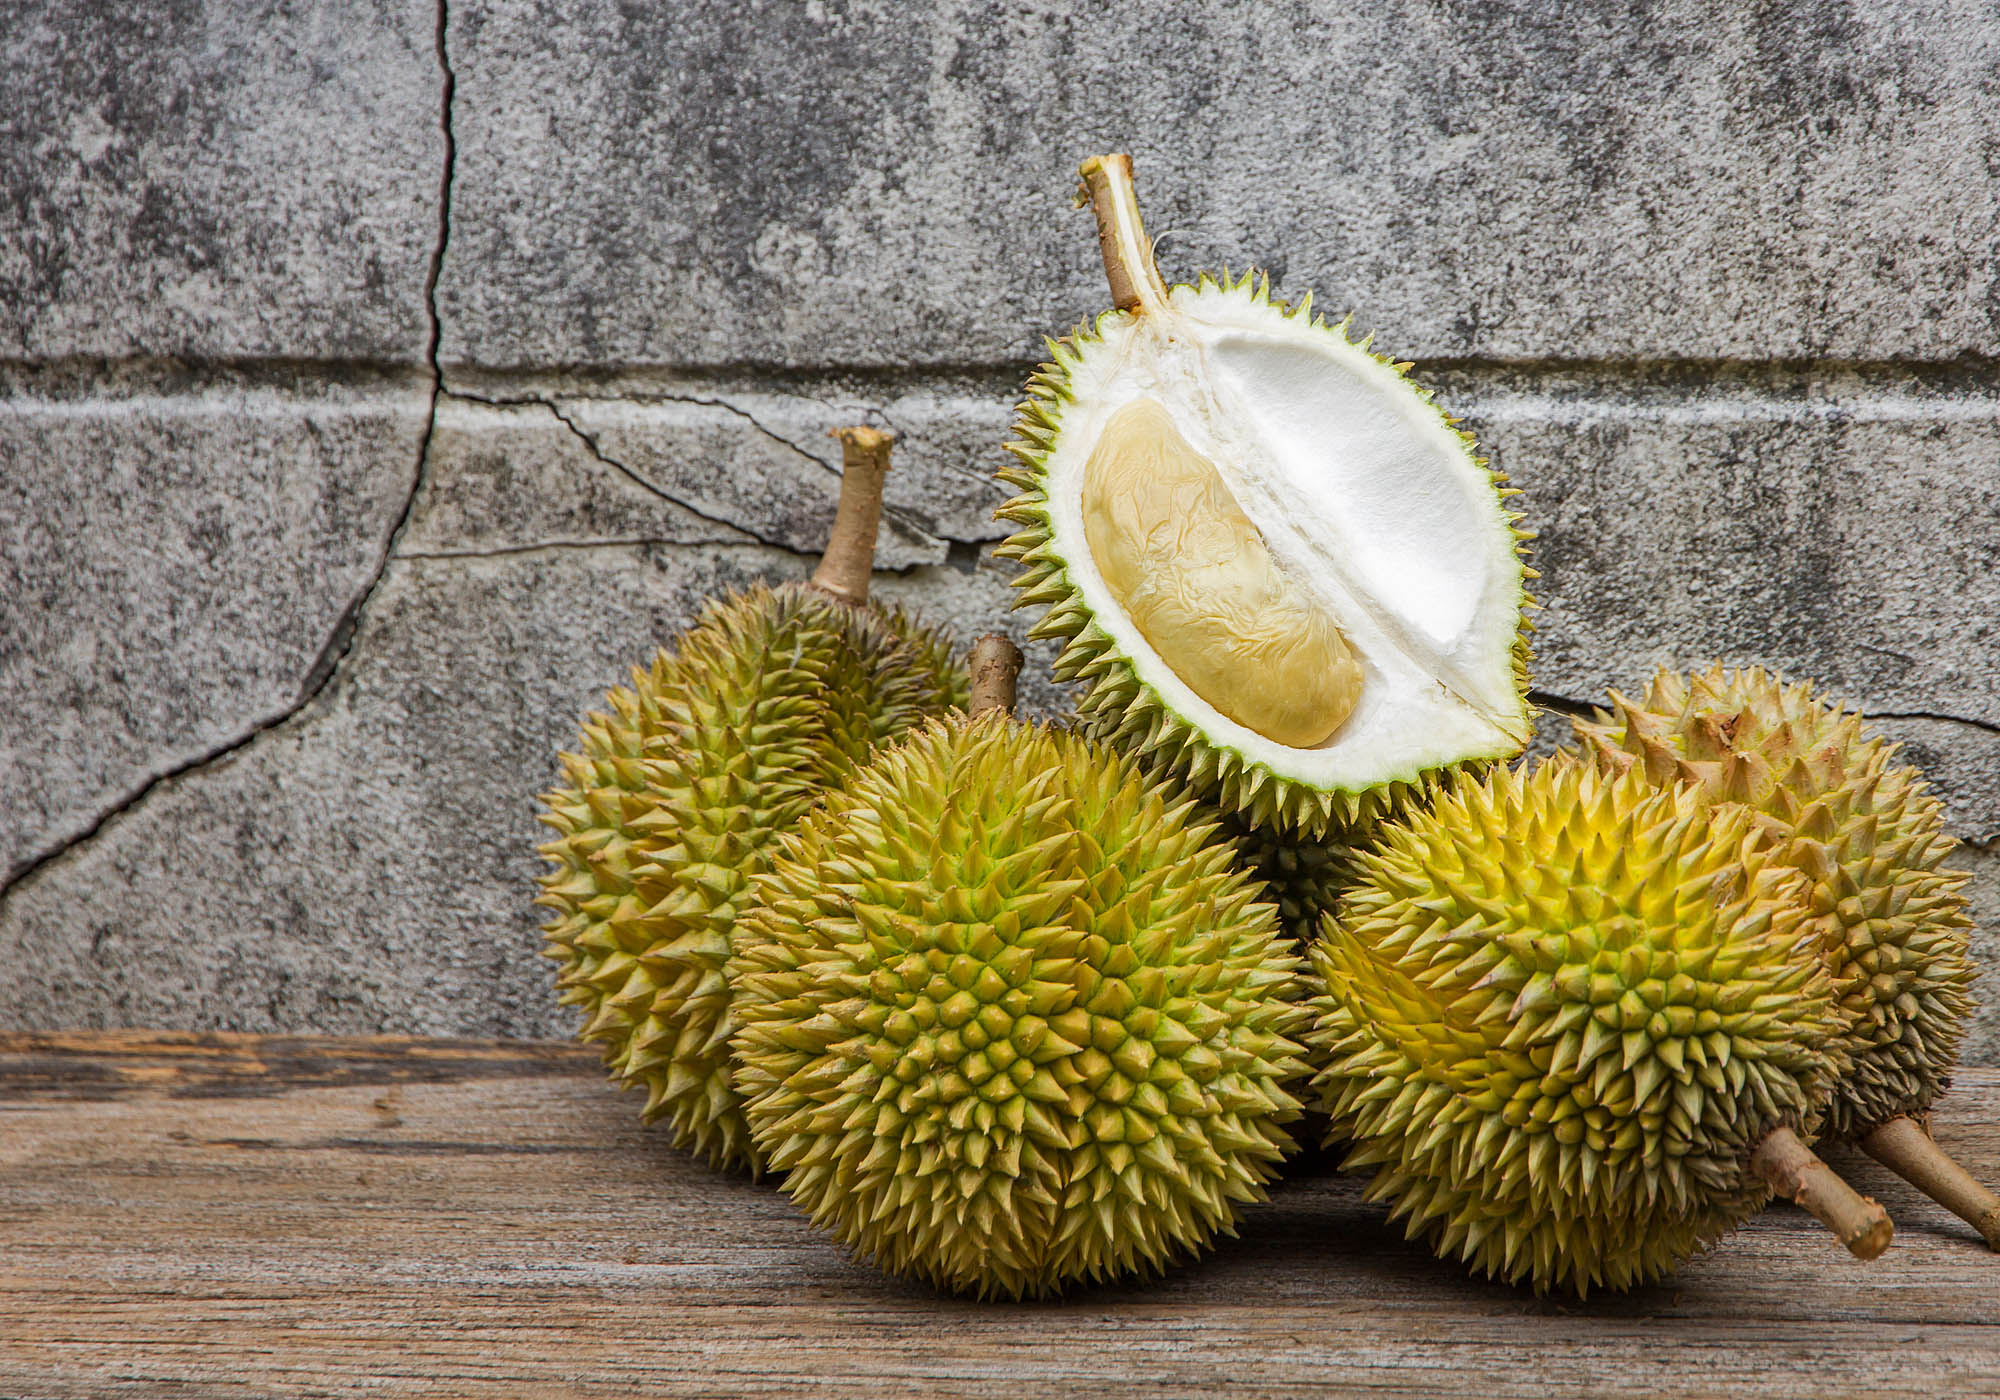 Durian Pics, Food Collection